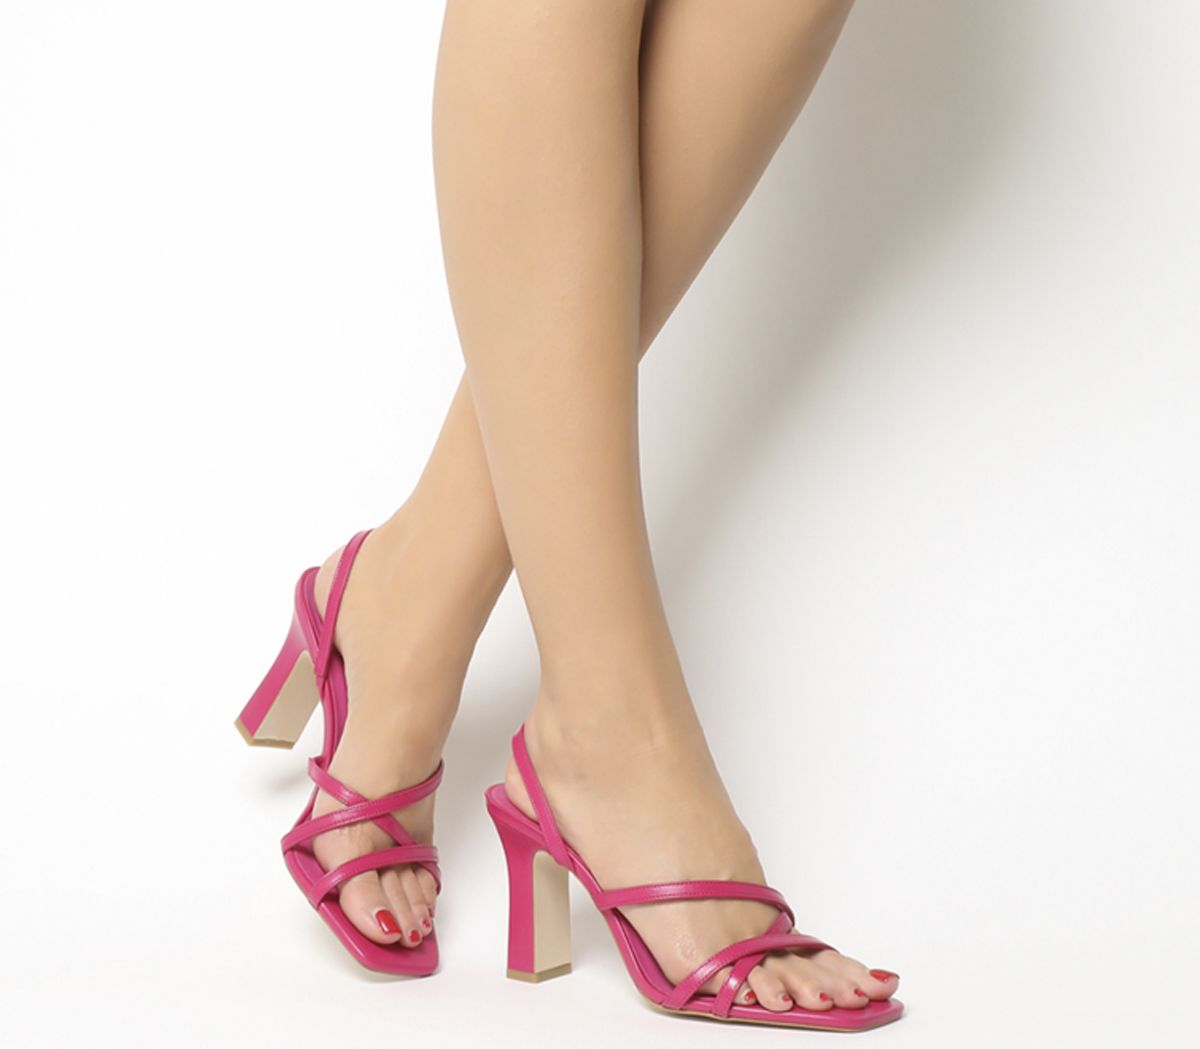 192cad5f81 Office Mariah Square Toe Strappy Sandals Pink Leather - Mid Heels